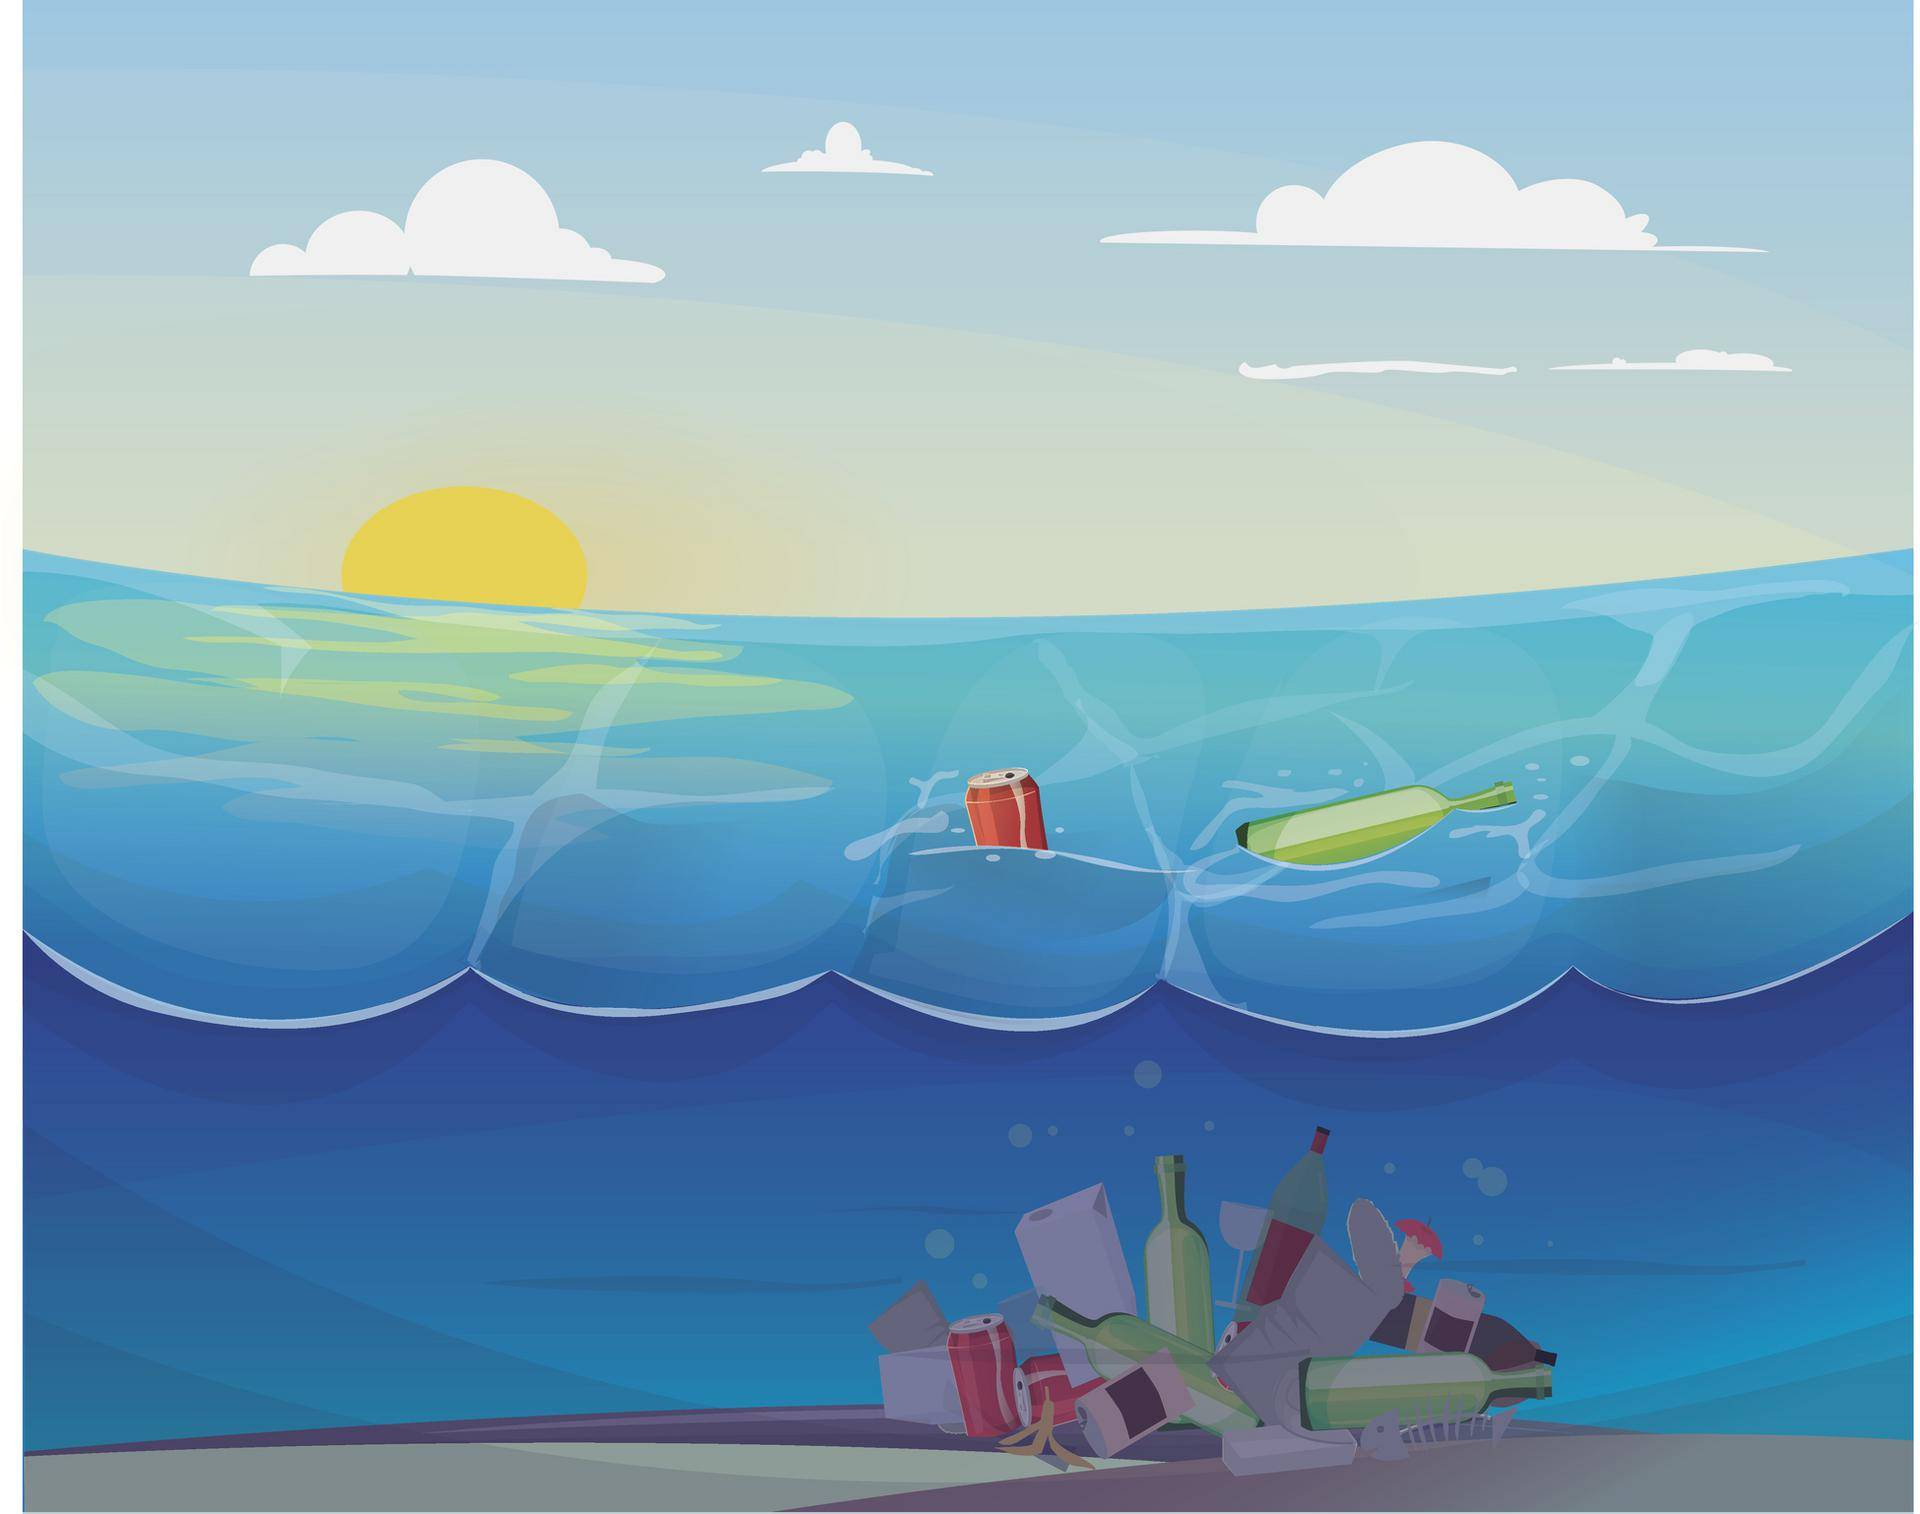 Pollution problem in the ocean